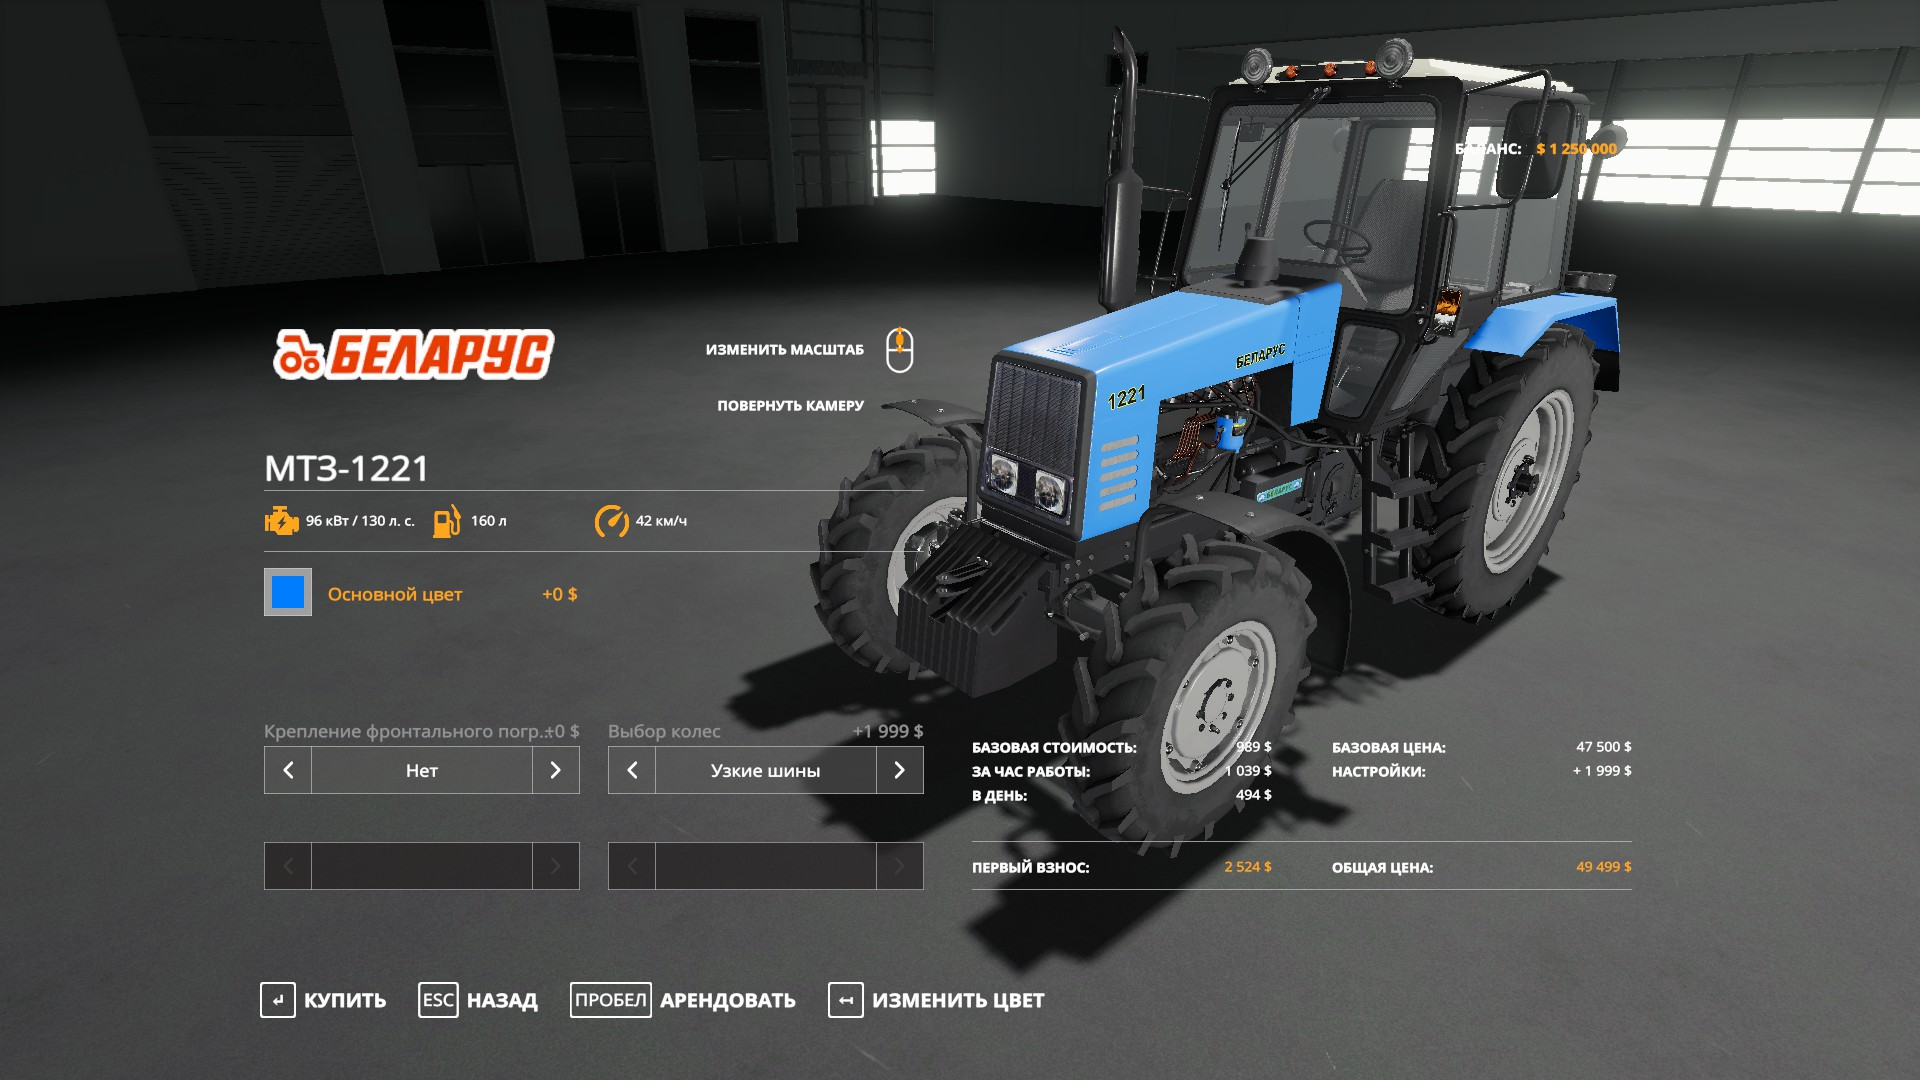 МТЗ-1221(+узкие колёса) v2.0.1 для Farming Simulator 2019